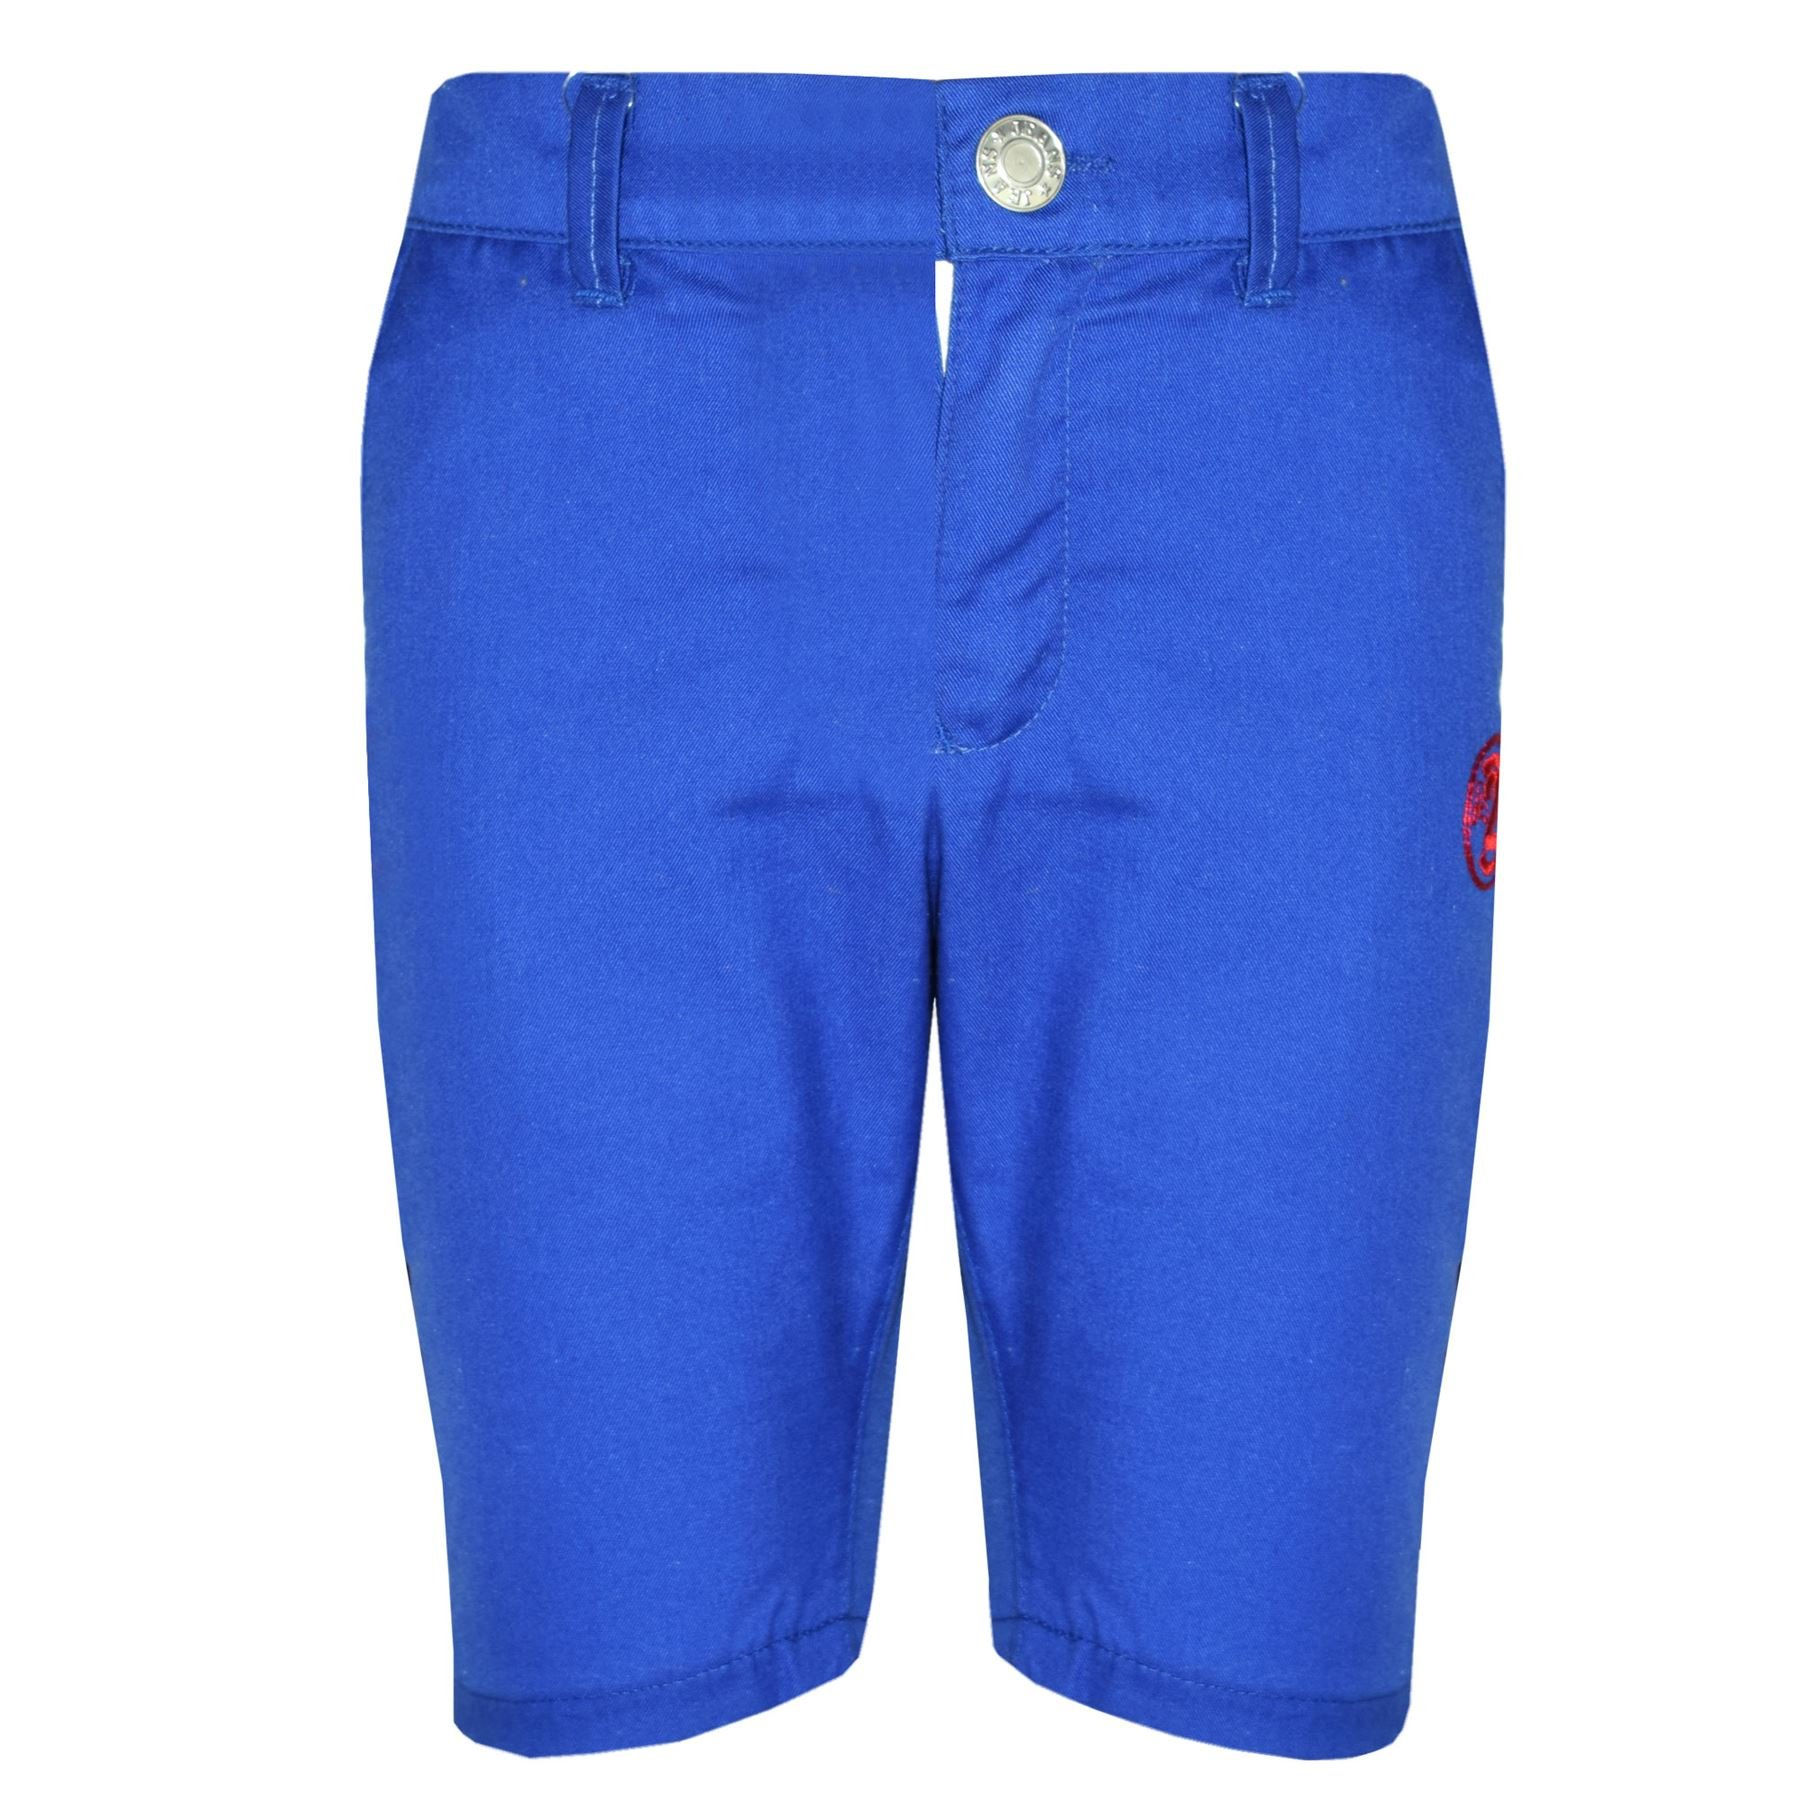 Boys Shorts Kids Blue Chino Shorts Summer Knee Length Half Pant New Age 2-13 Yr